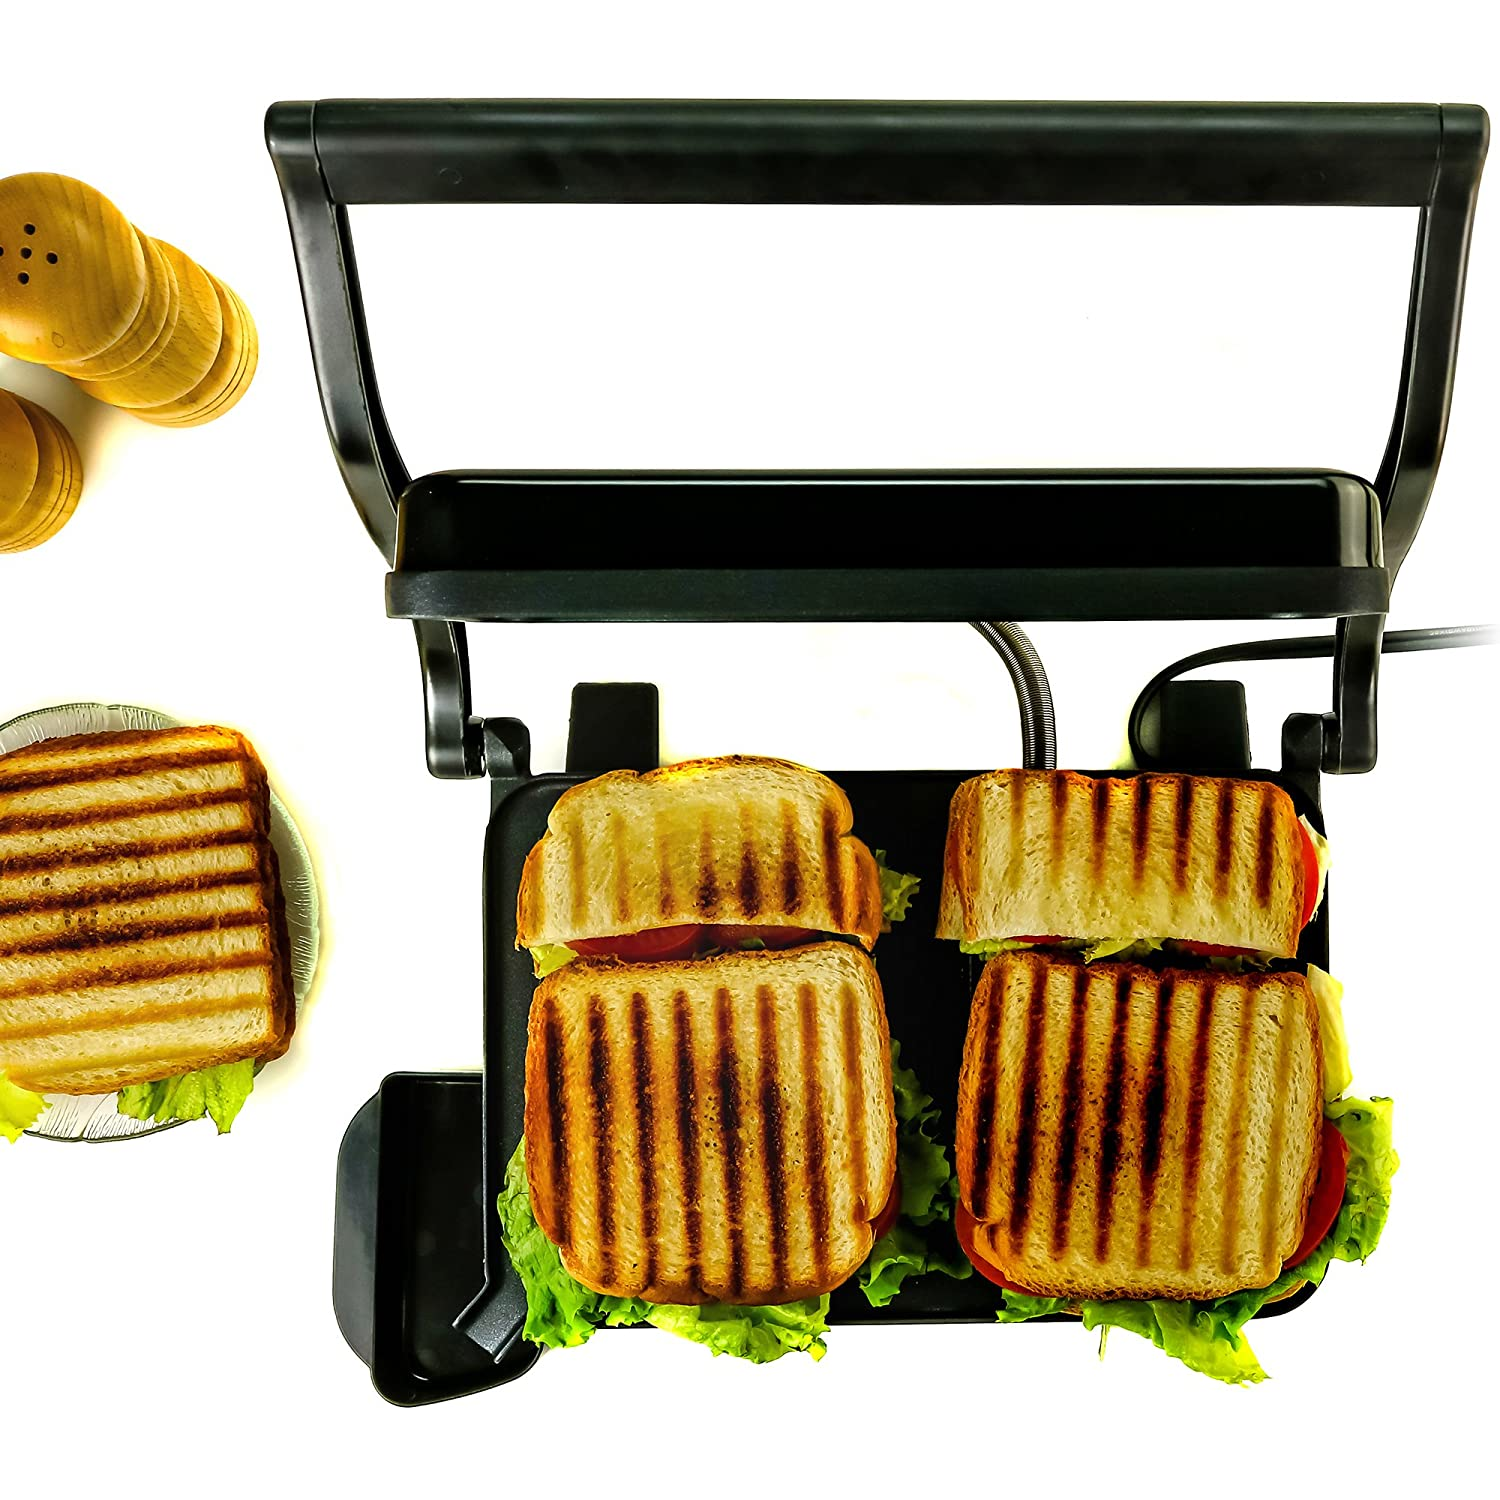 2-Slice Black Nickel Brushed Drip Tray Included Ovente GP0620B 2 Electric Panini Press Grill and Gourmet Sandwich Maker with Auto Shut-Off